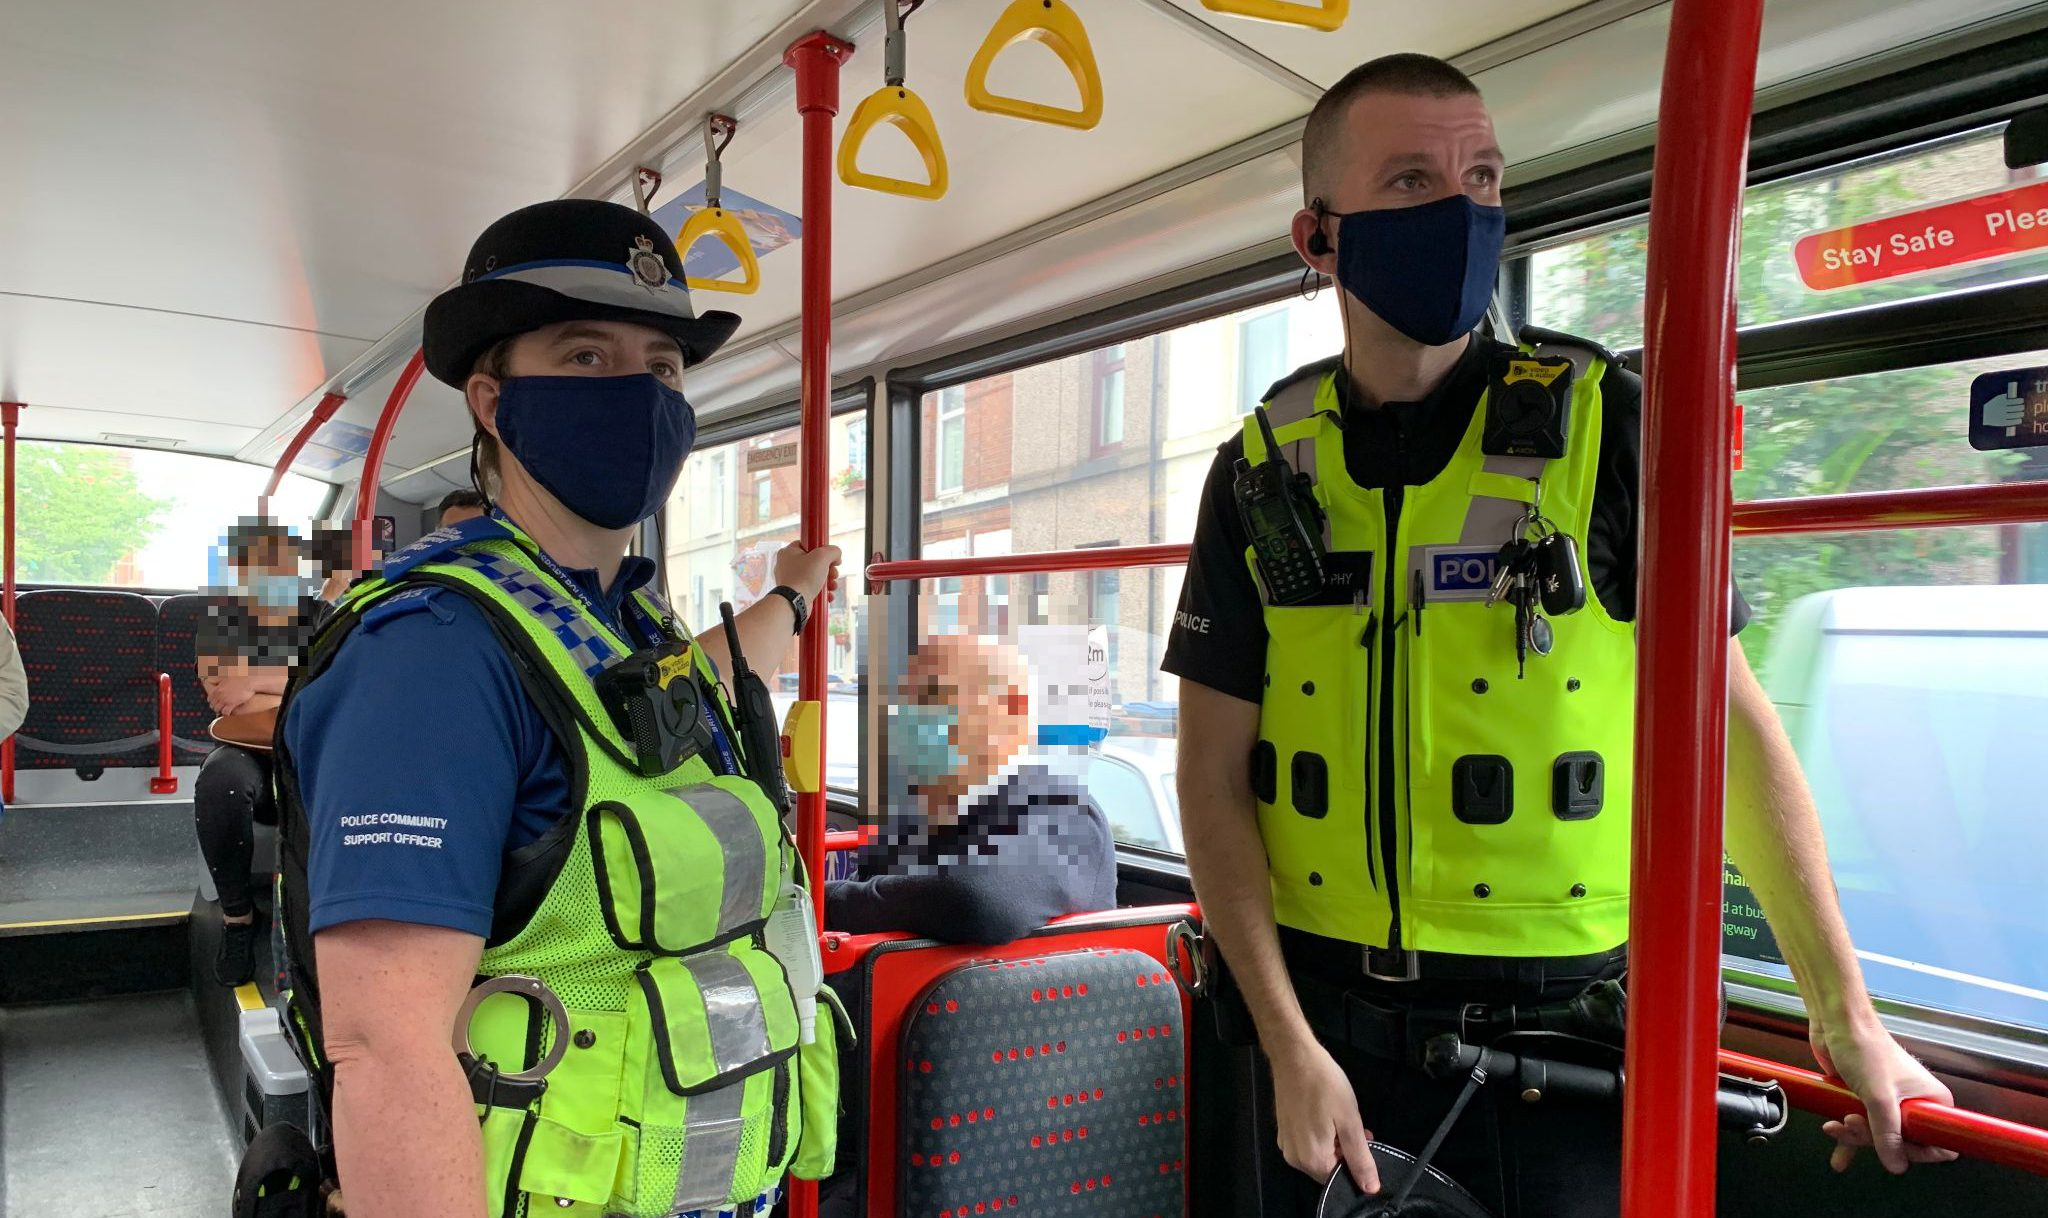 Safer Travel Clampdown On Passengers Not Wearing Face Coverings